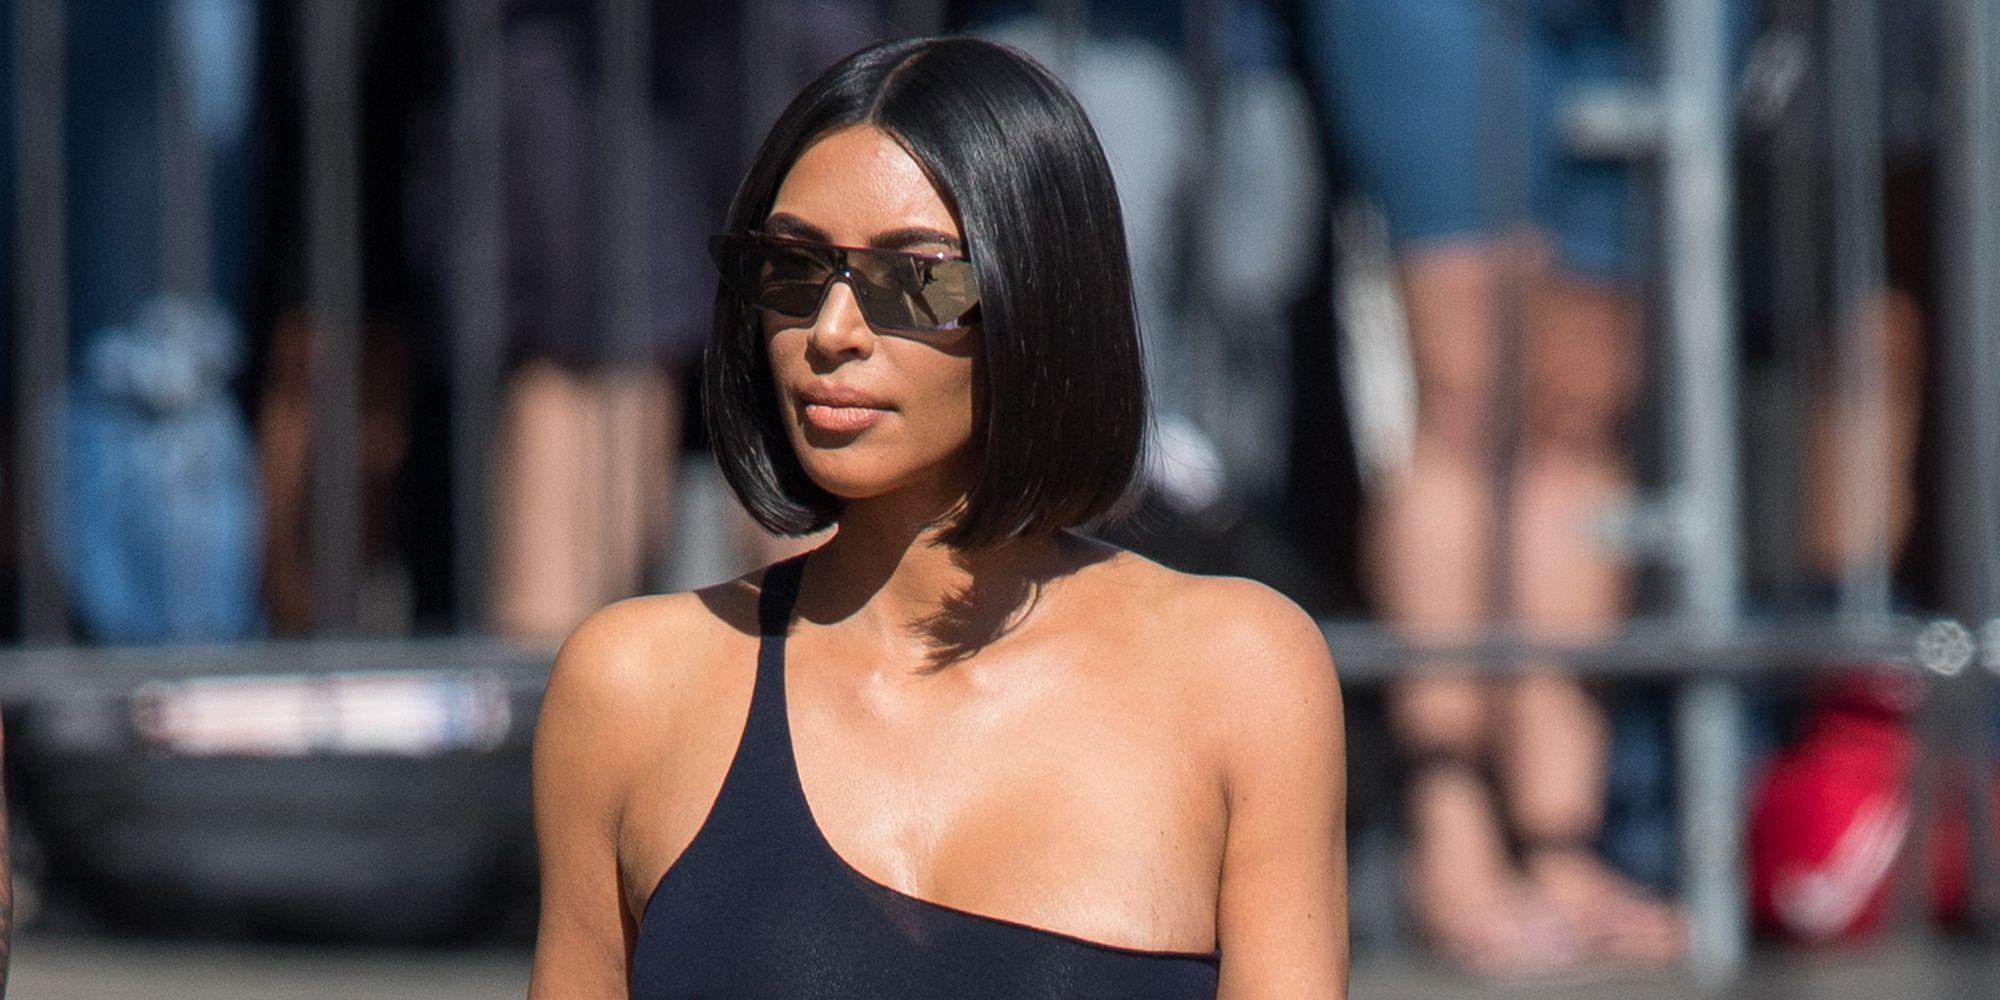 Some People Believe That Kim Kardashian Changing The Name Of Her Shapewear Line 'Kimono' Was Planned From The Very Beginning